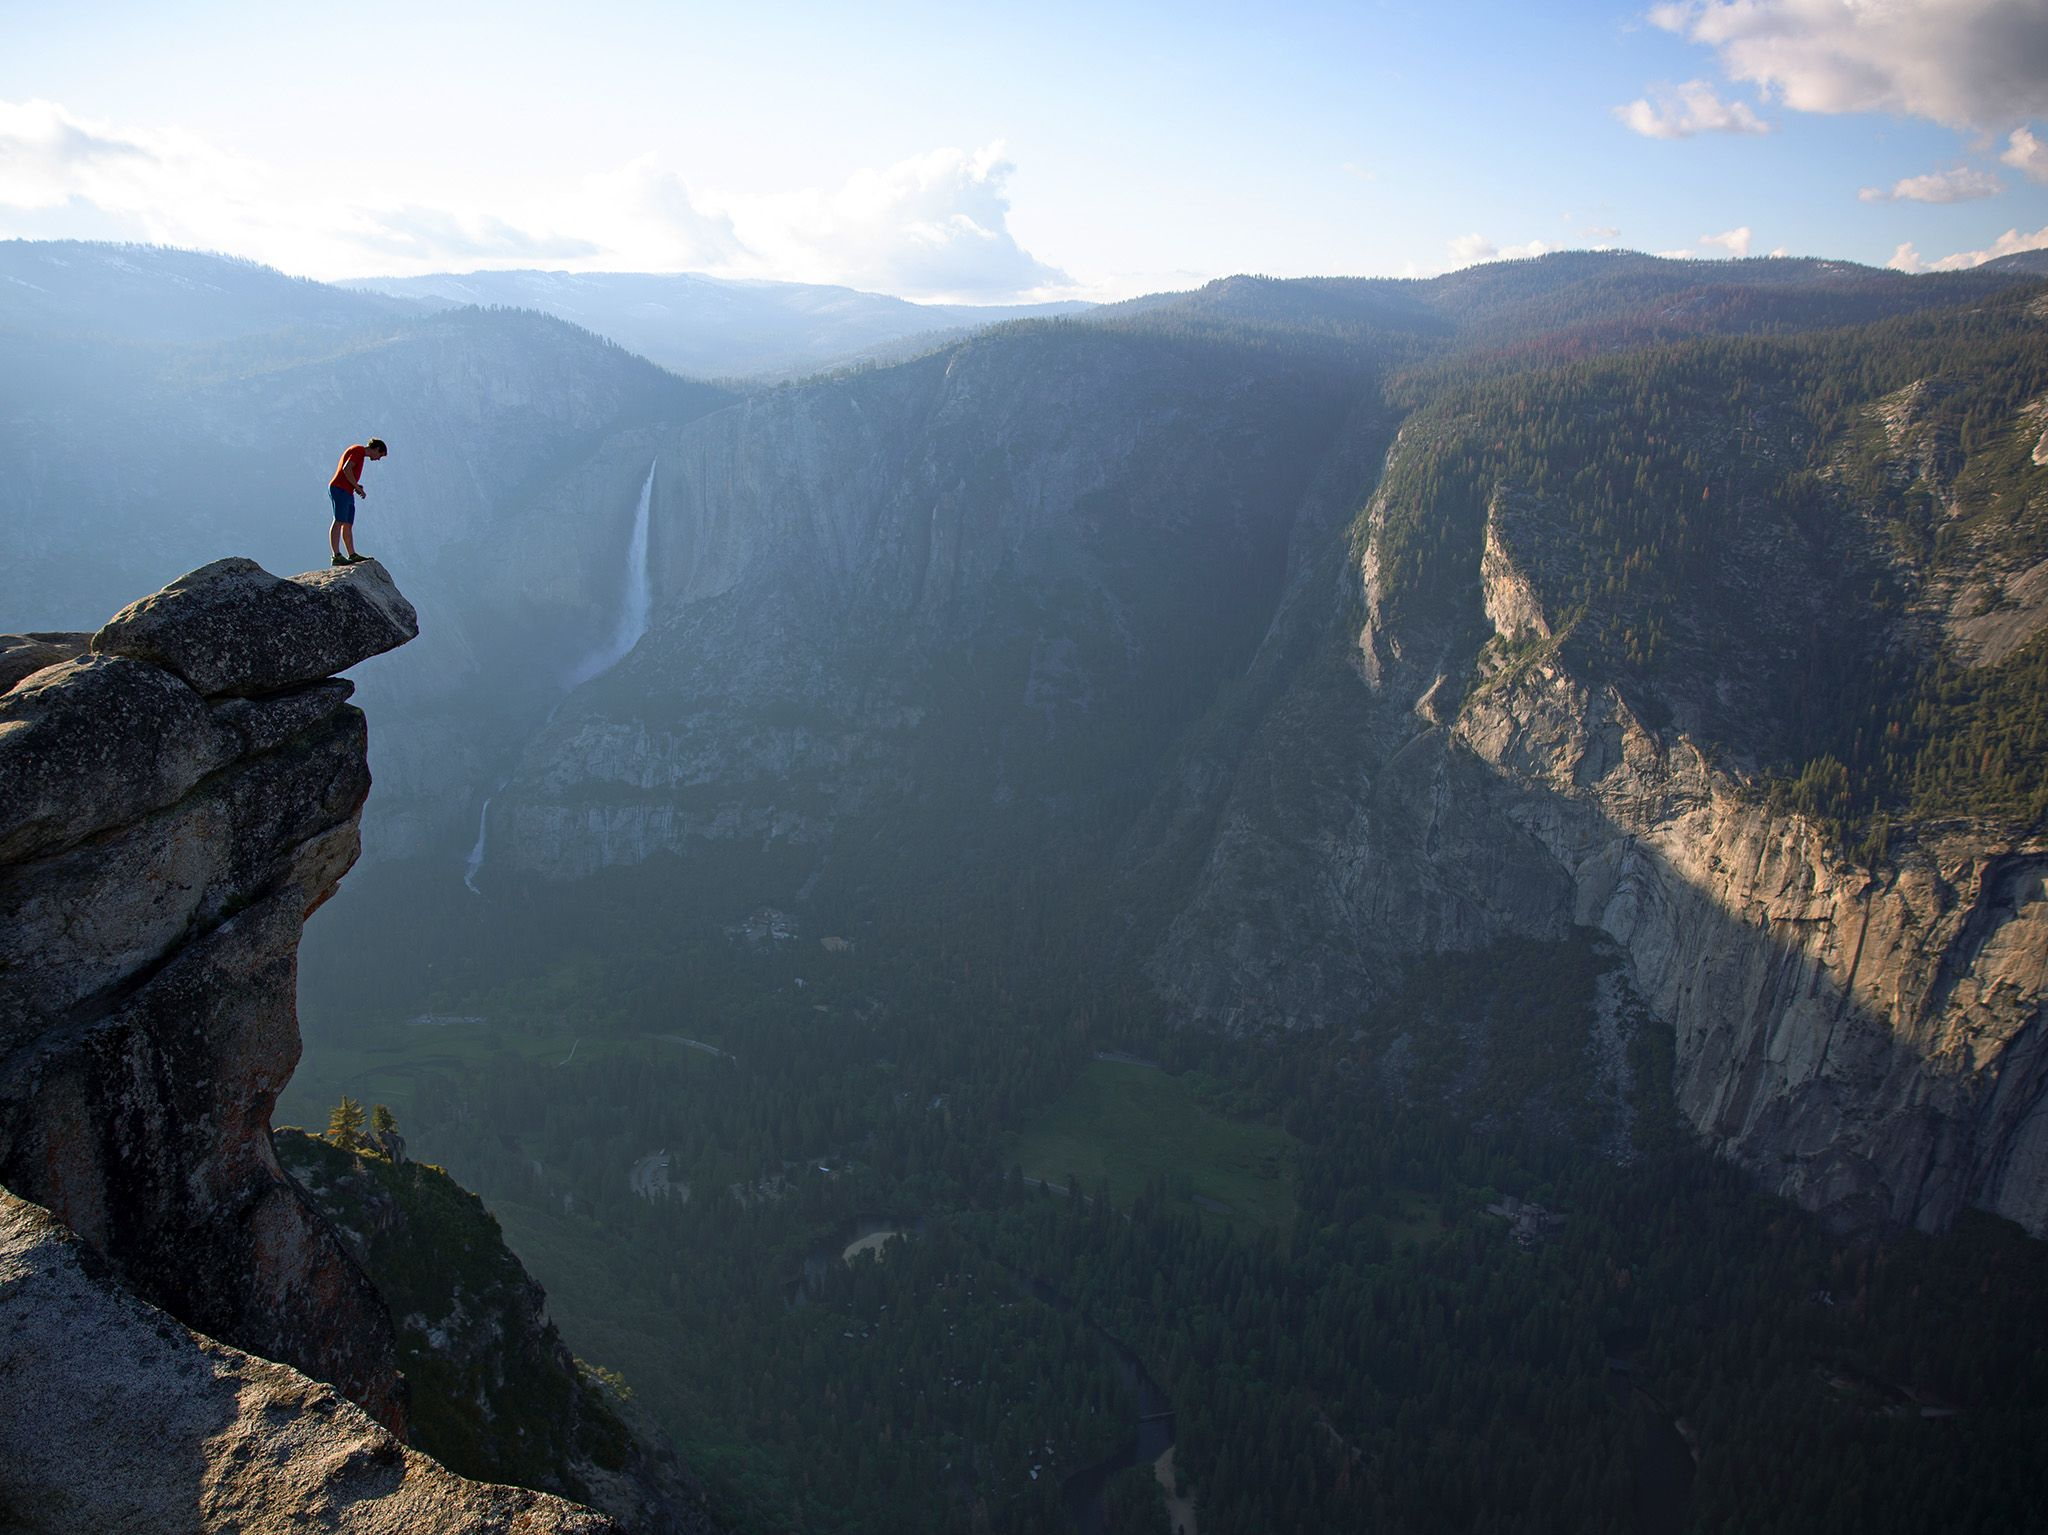 Alex Honnold peers over the edge of Glacier Point in Yosemite National Park. He had just climbed... [Photo of the day - March 2019]